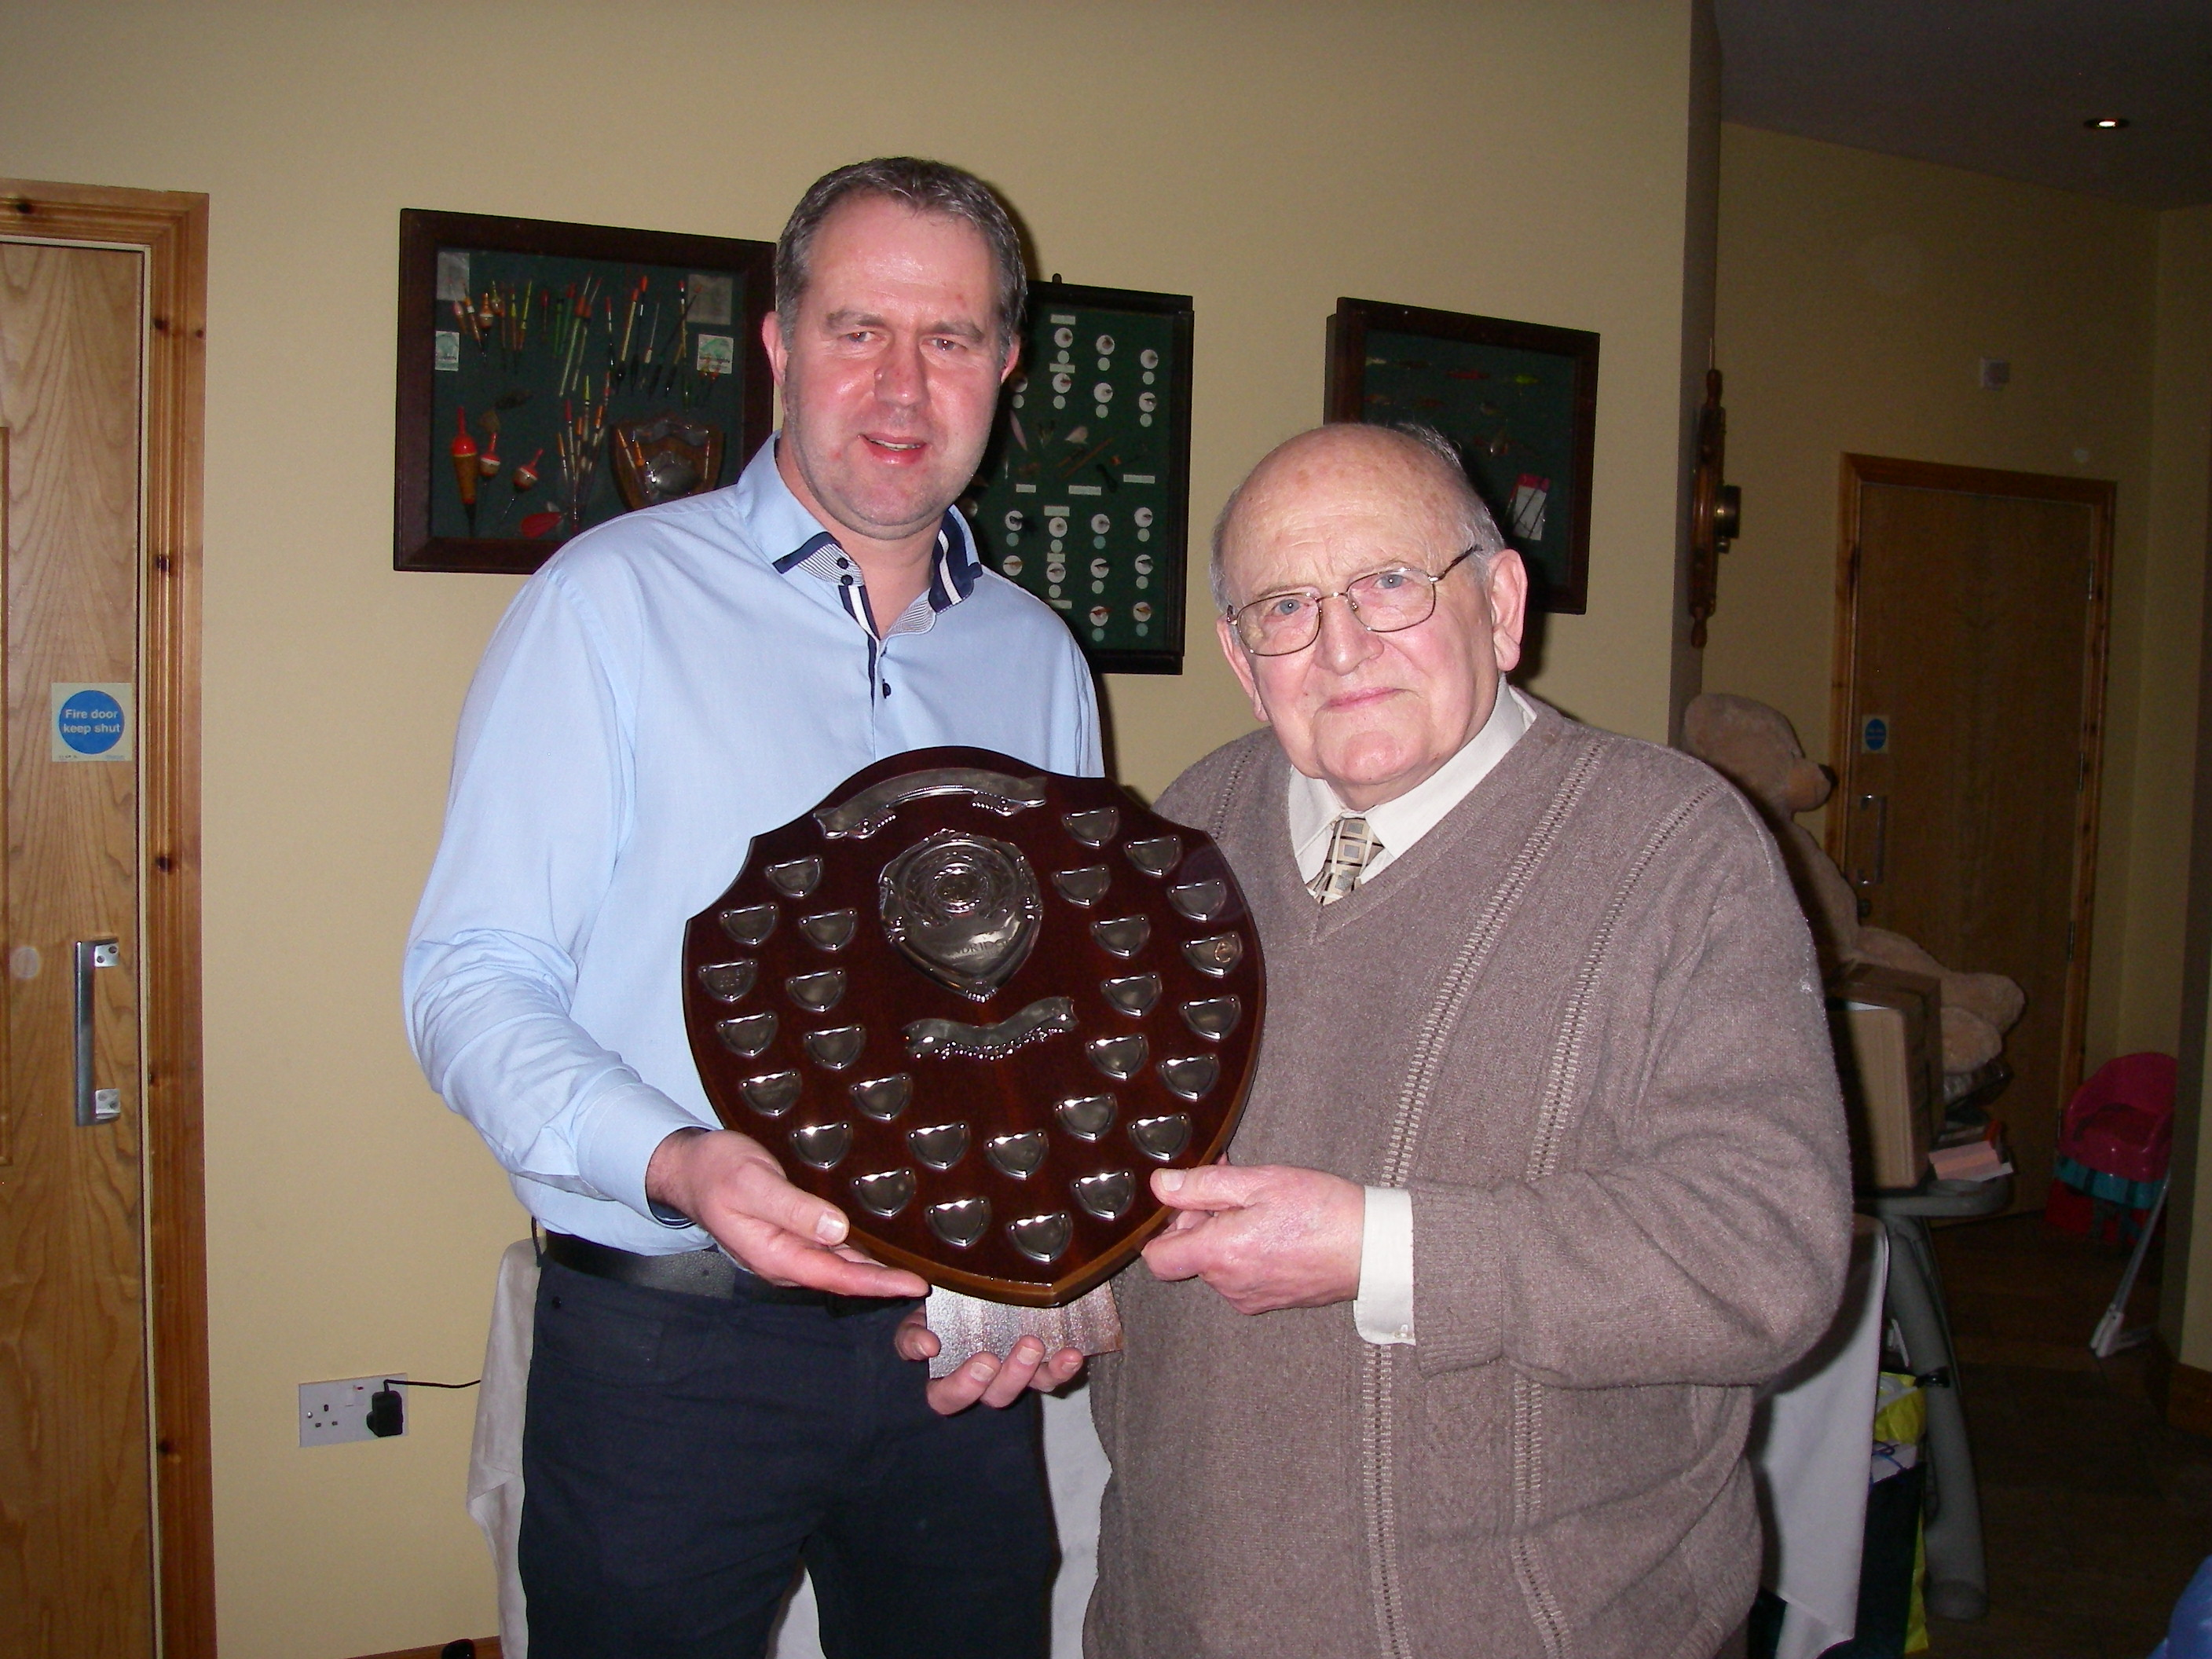 BAC Roger McClements, Angler of the Year 2017 is presented with the Angler of the Year Shield by Sam Vage, Club President